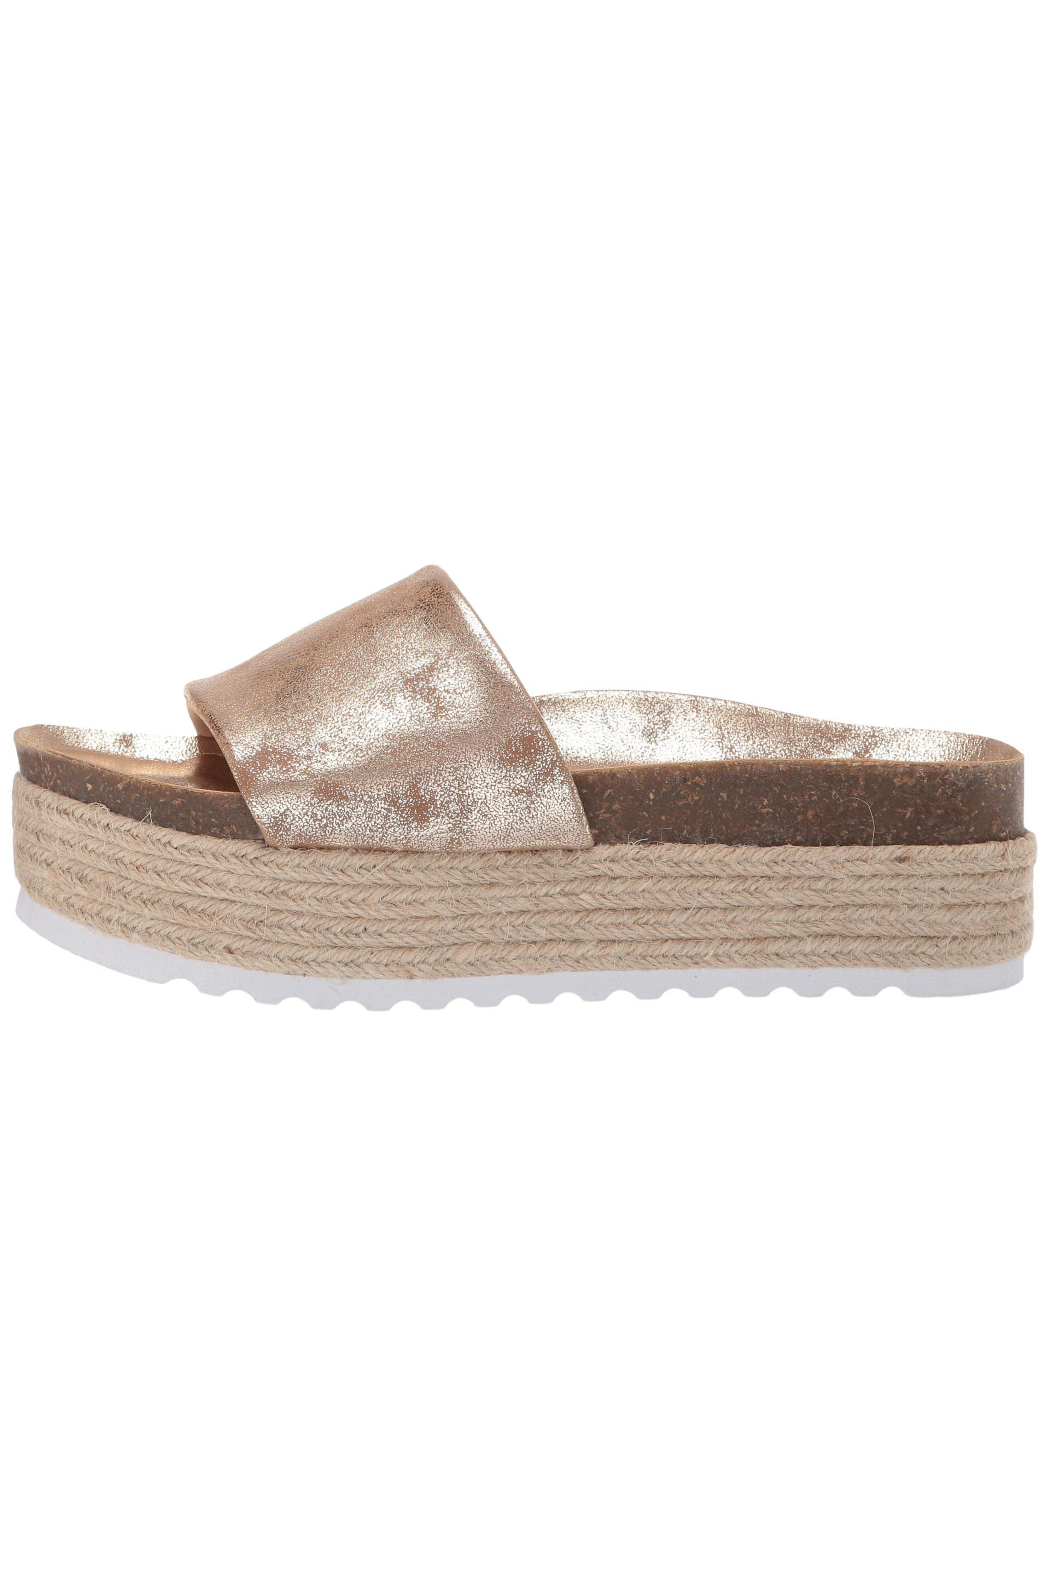 Dirty Laundry Pippa Flatform Sandal - Front Cropped Image